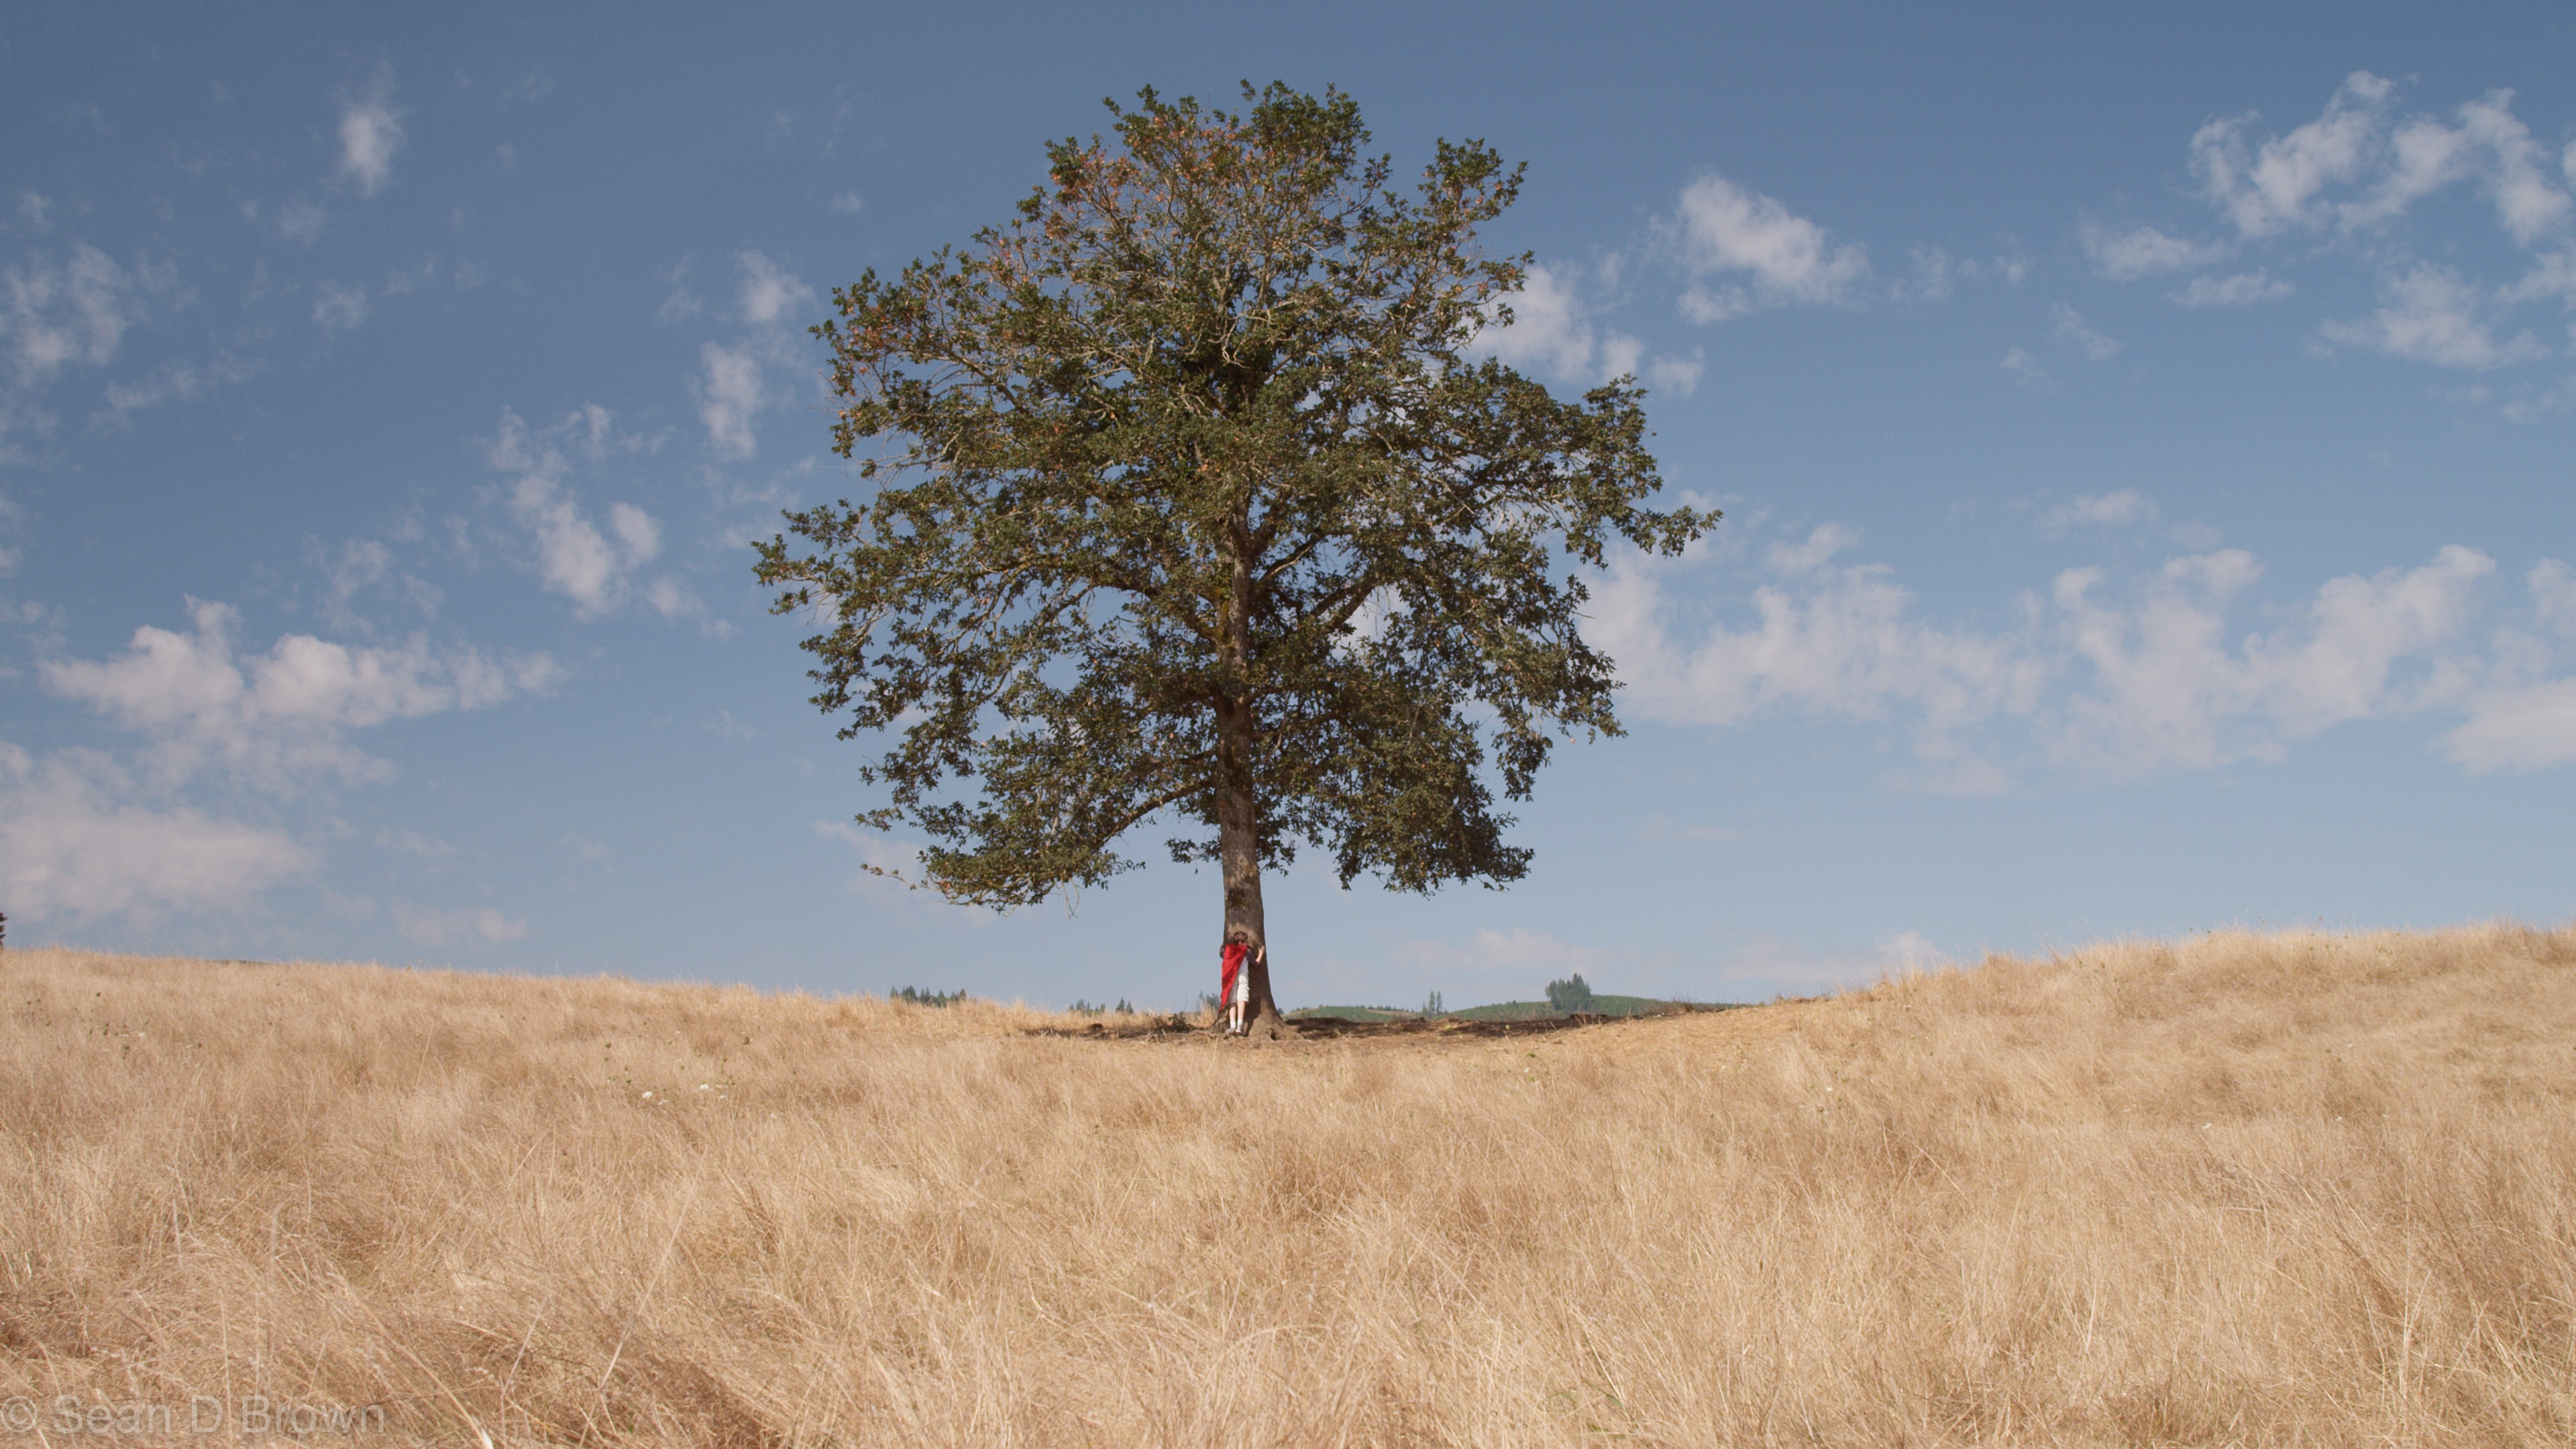 A distant shot of a person leaning against the trunk of a lone tree in a golden field